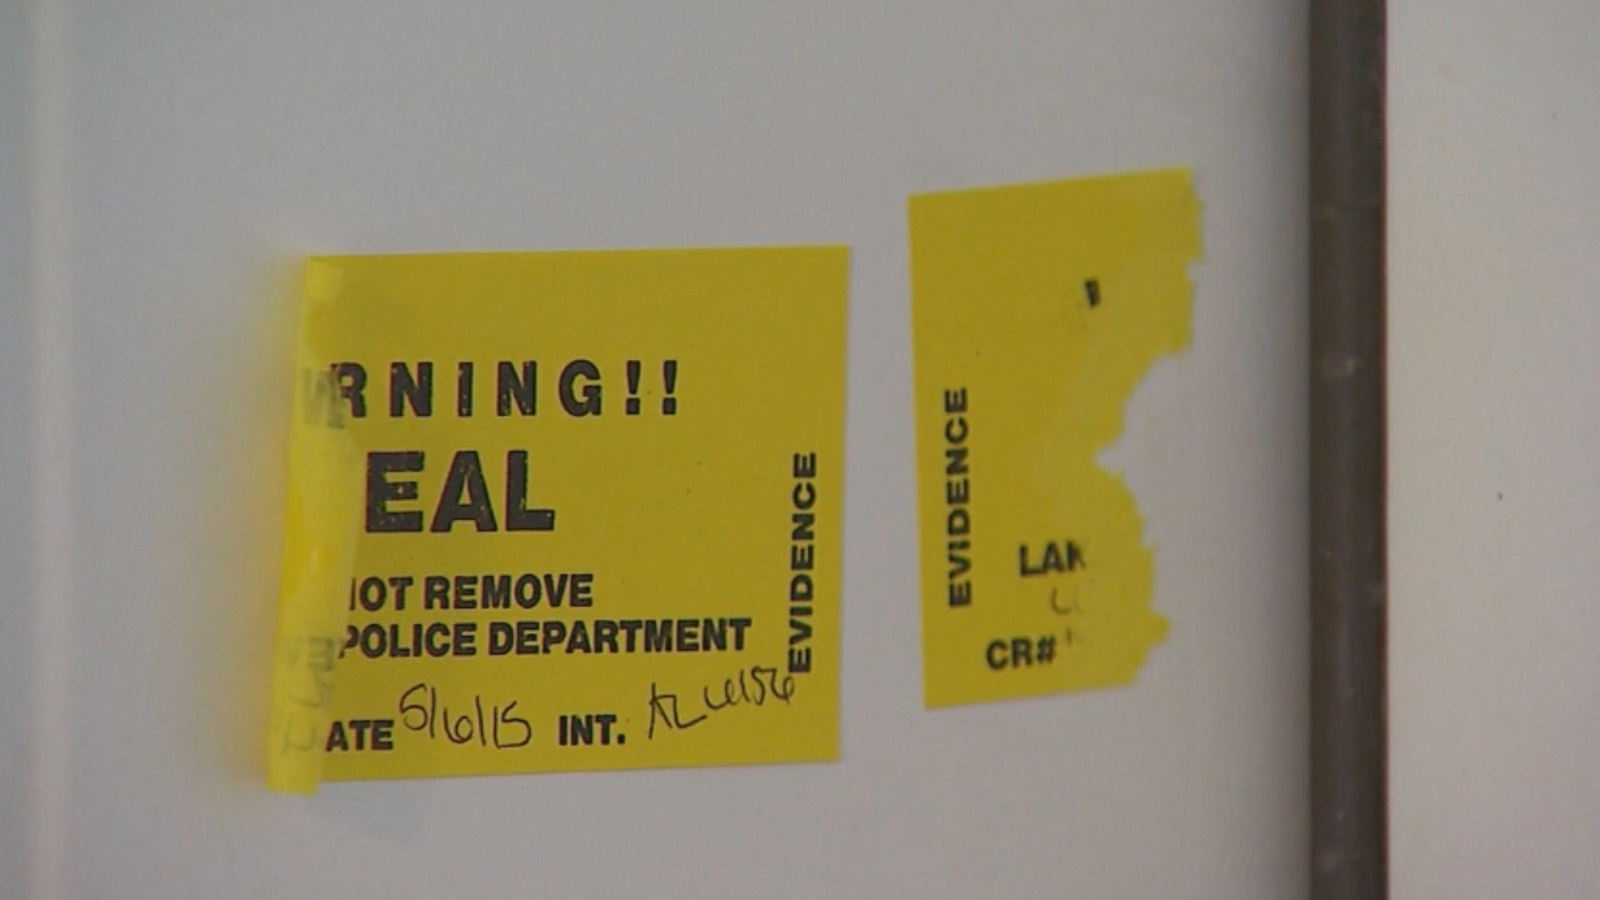 The evidence seal on the apartment where the 10-year-old boy was found unresponsive (credit: CBS)